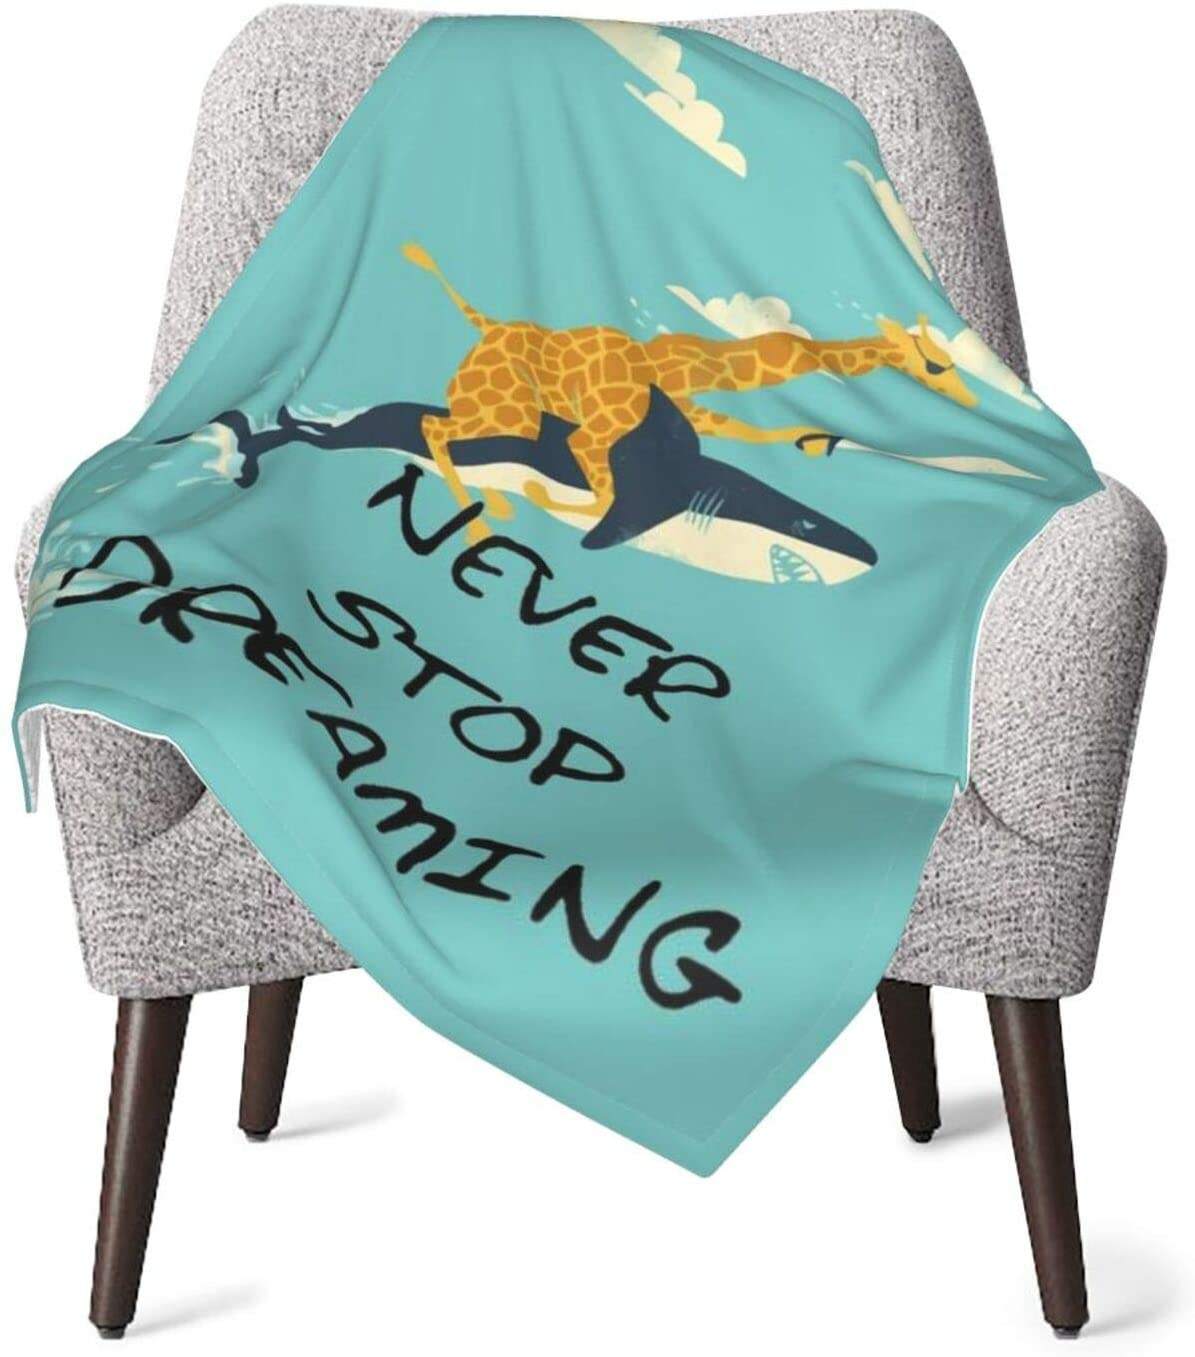 Kiuloam Inspirational Quote with Deer Shark Unisex Baby Blanket,Super Soft Plush Warm Bed Blanket for Toddler Baby Newborn Blanket All Season Ultra Soft,one Size